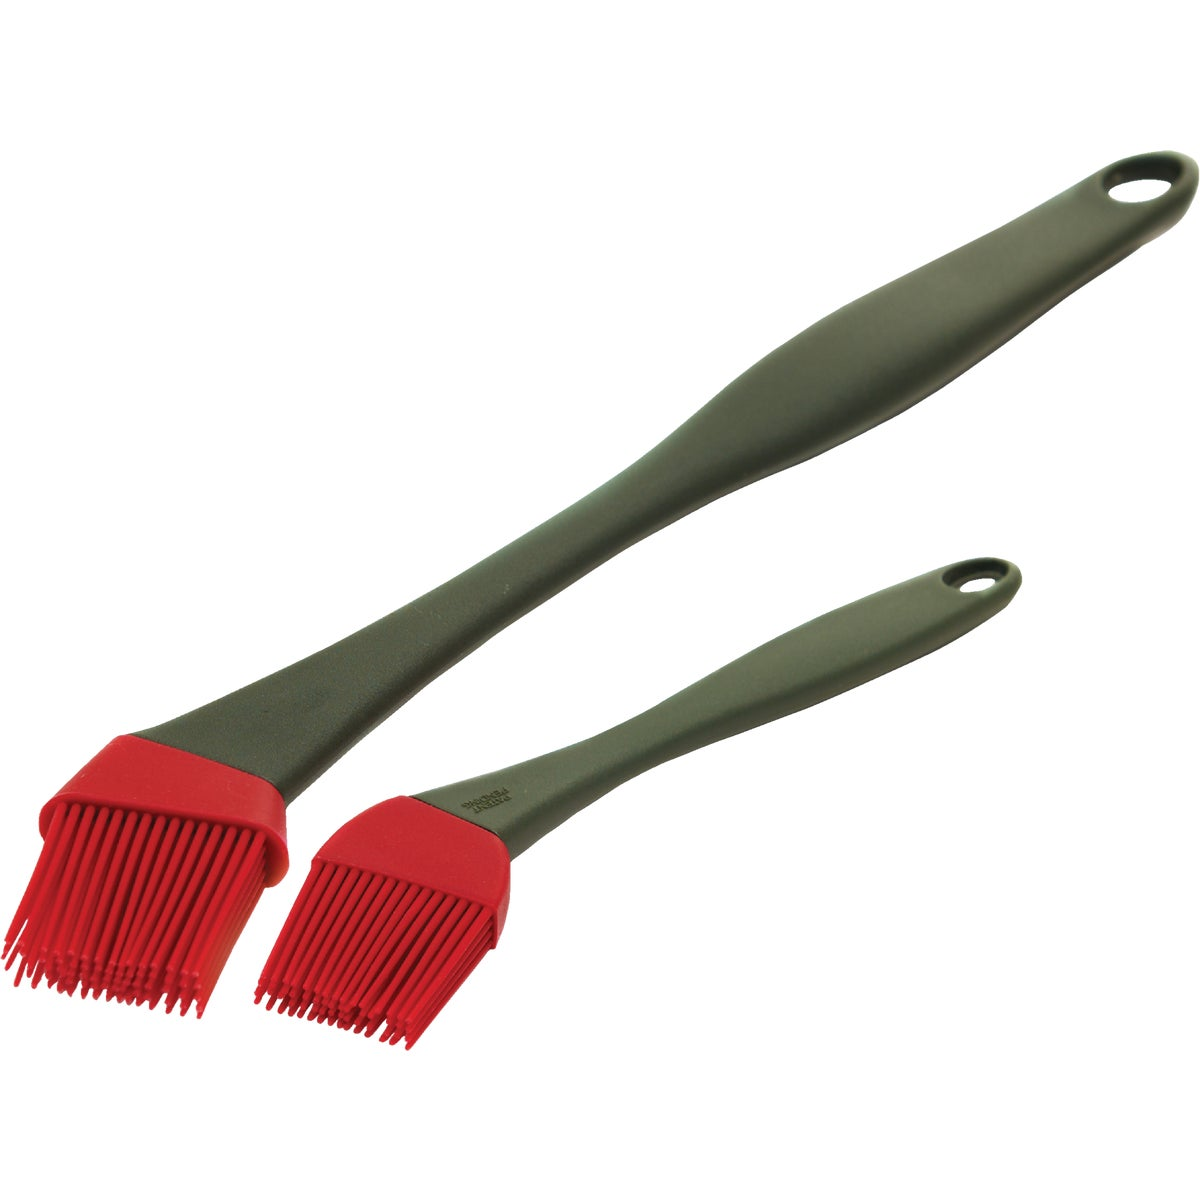 2PC SILICN BASTING BRUSH - 41090 by Onward Multi Corp Y1